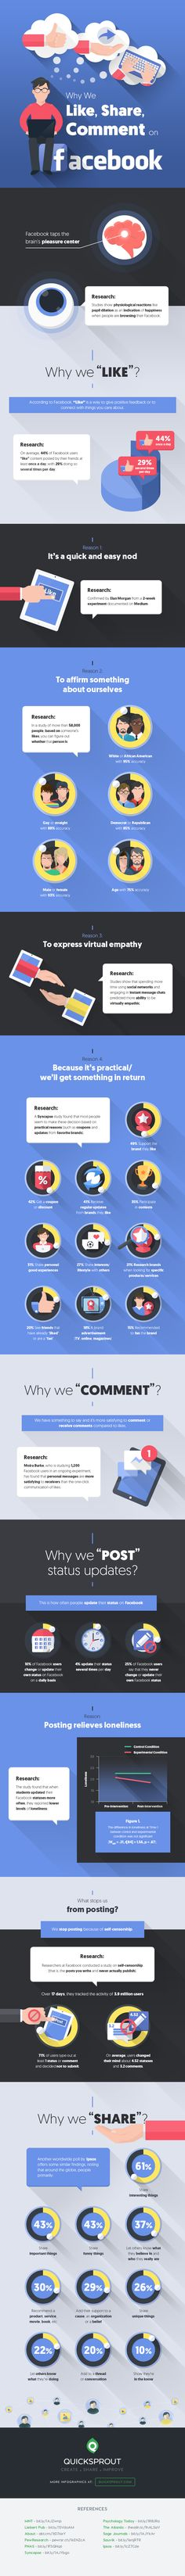 Why We Like, Comment, and Share on #Facebook - #infographic